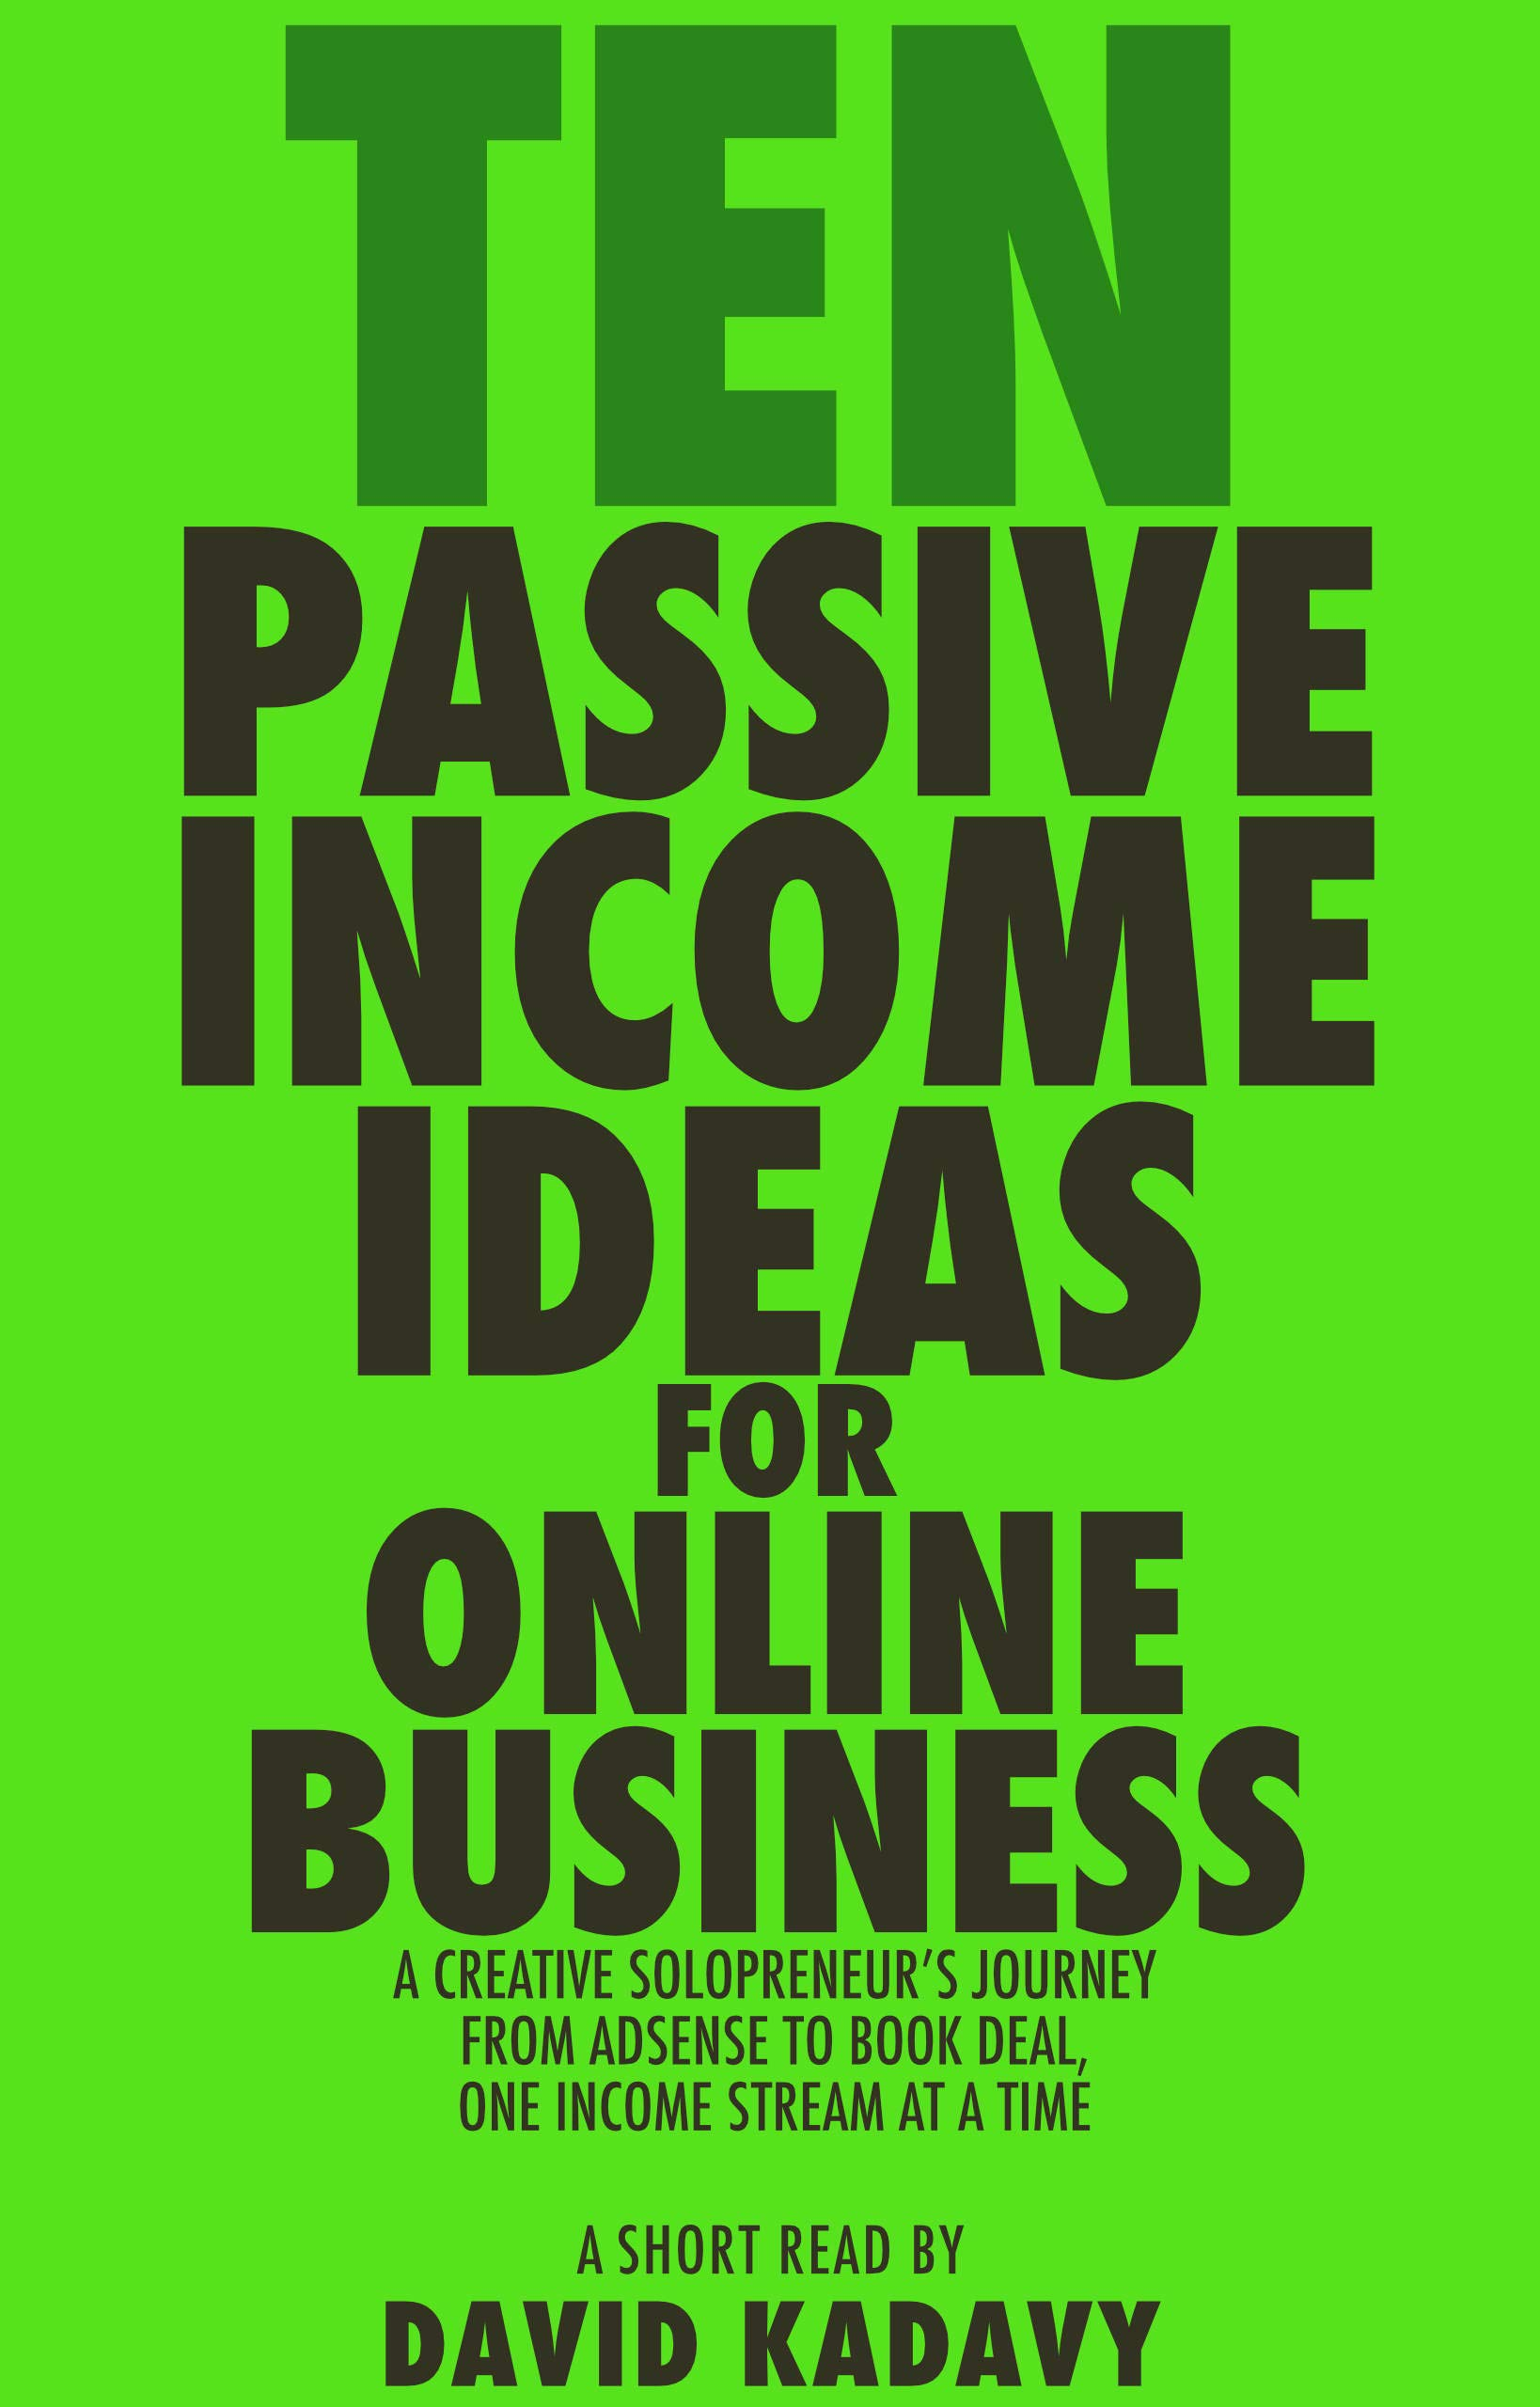 Ten Passive Income Ideas For Online Business  A Creative Solopreneur's Journey From AdSense To Book Deal One Revenue Stream At A Time  Short Read   English Edition